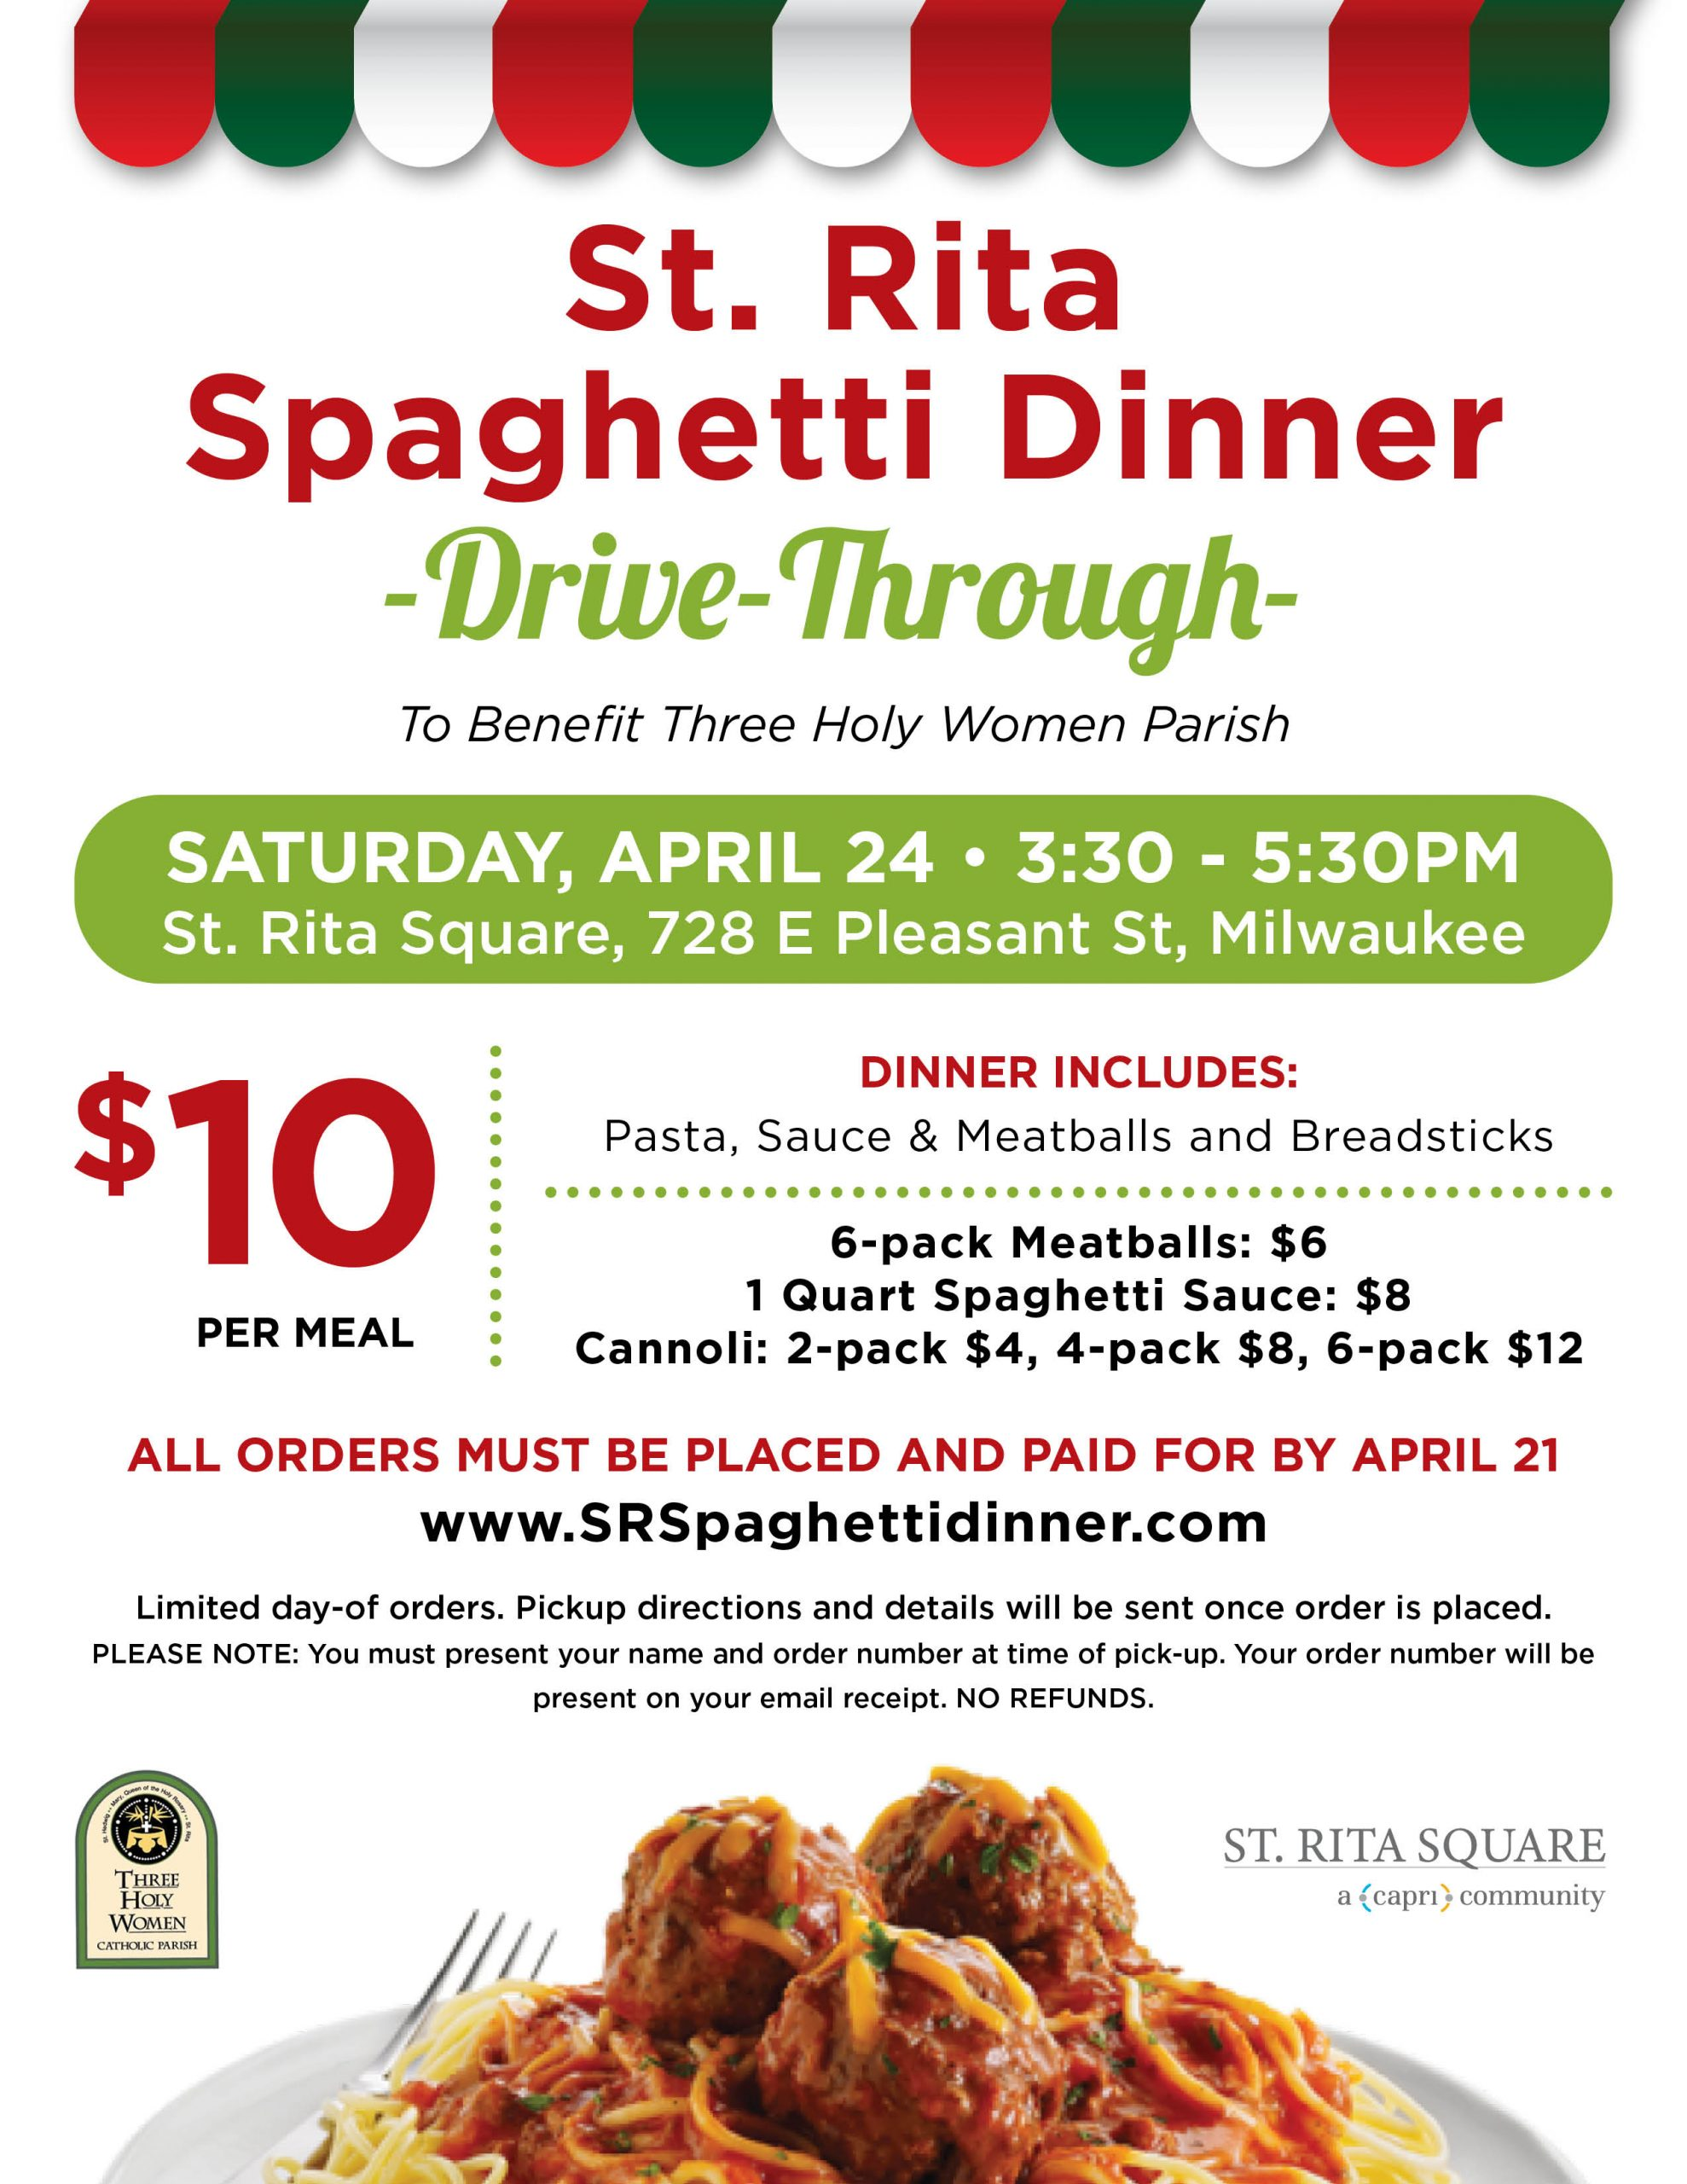 Spaghetti Dinner Drive-Through